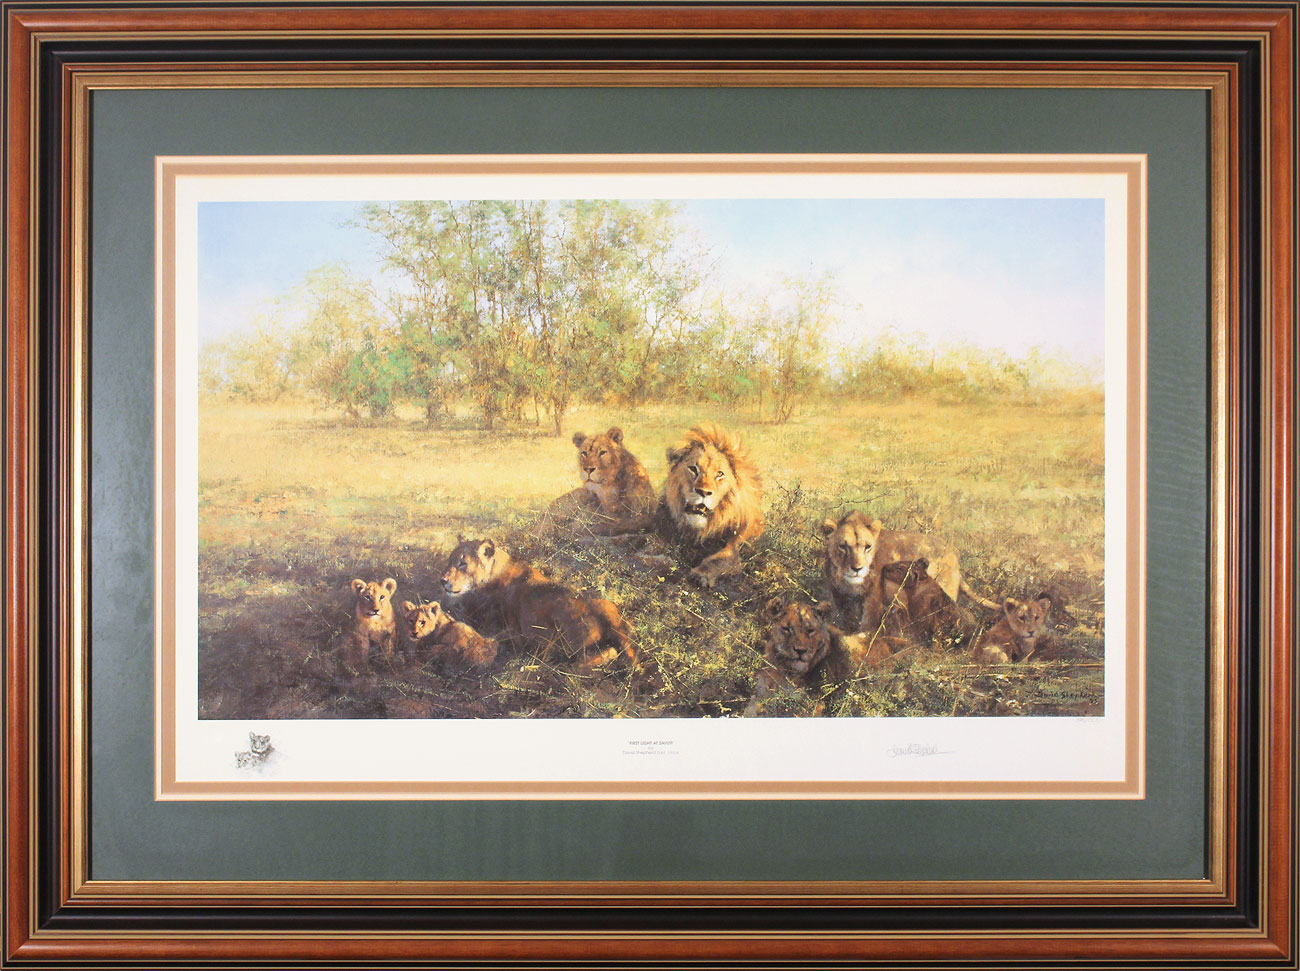 David Shepherd, Signed limited edition print, First Light at Savuti, click to enlarge